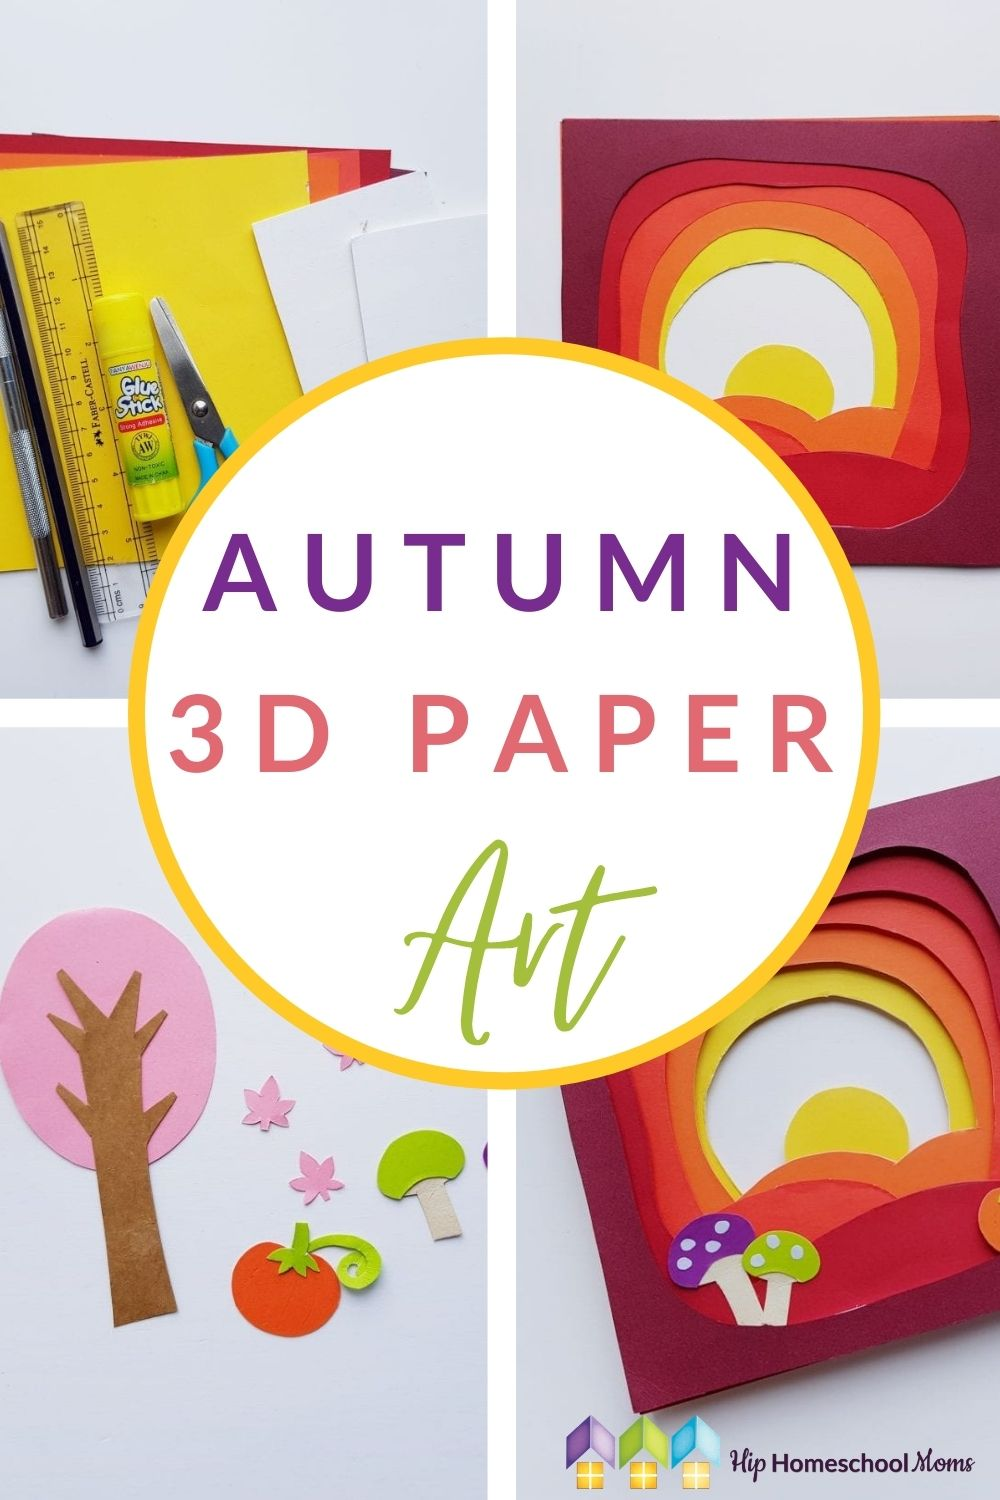 Free Printable Templates for Autumn 3D Paper Art. #3dpaperplateart #autumn3dpaperart #3Dpaperartforthefall